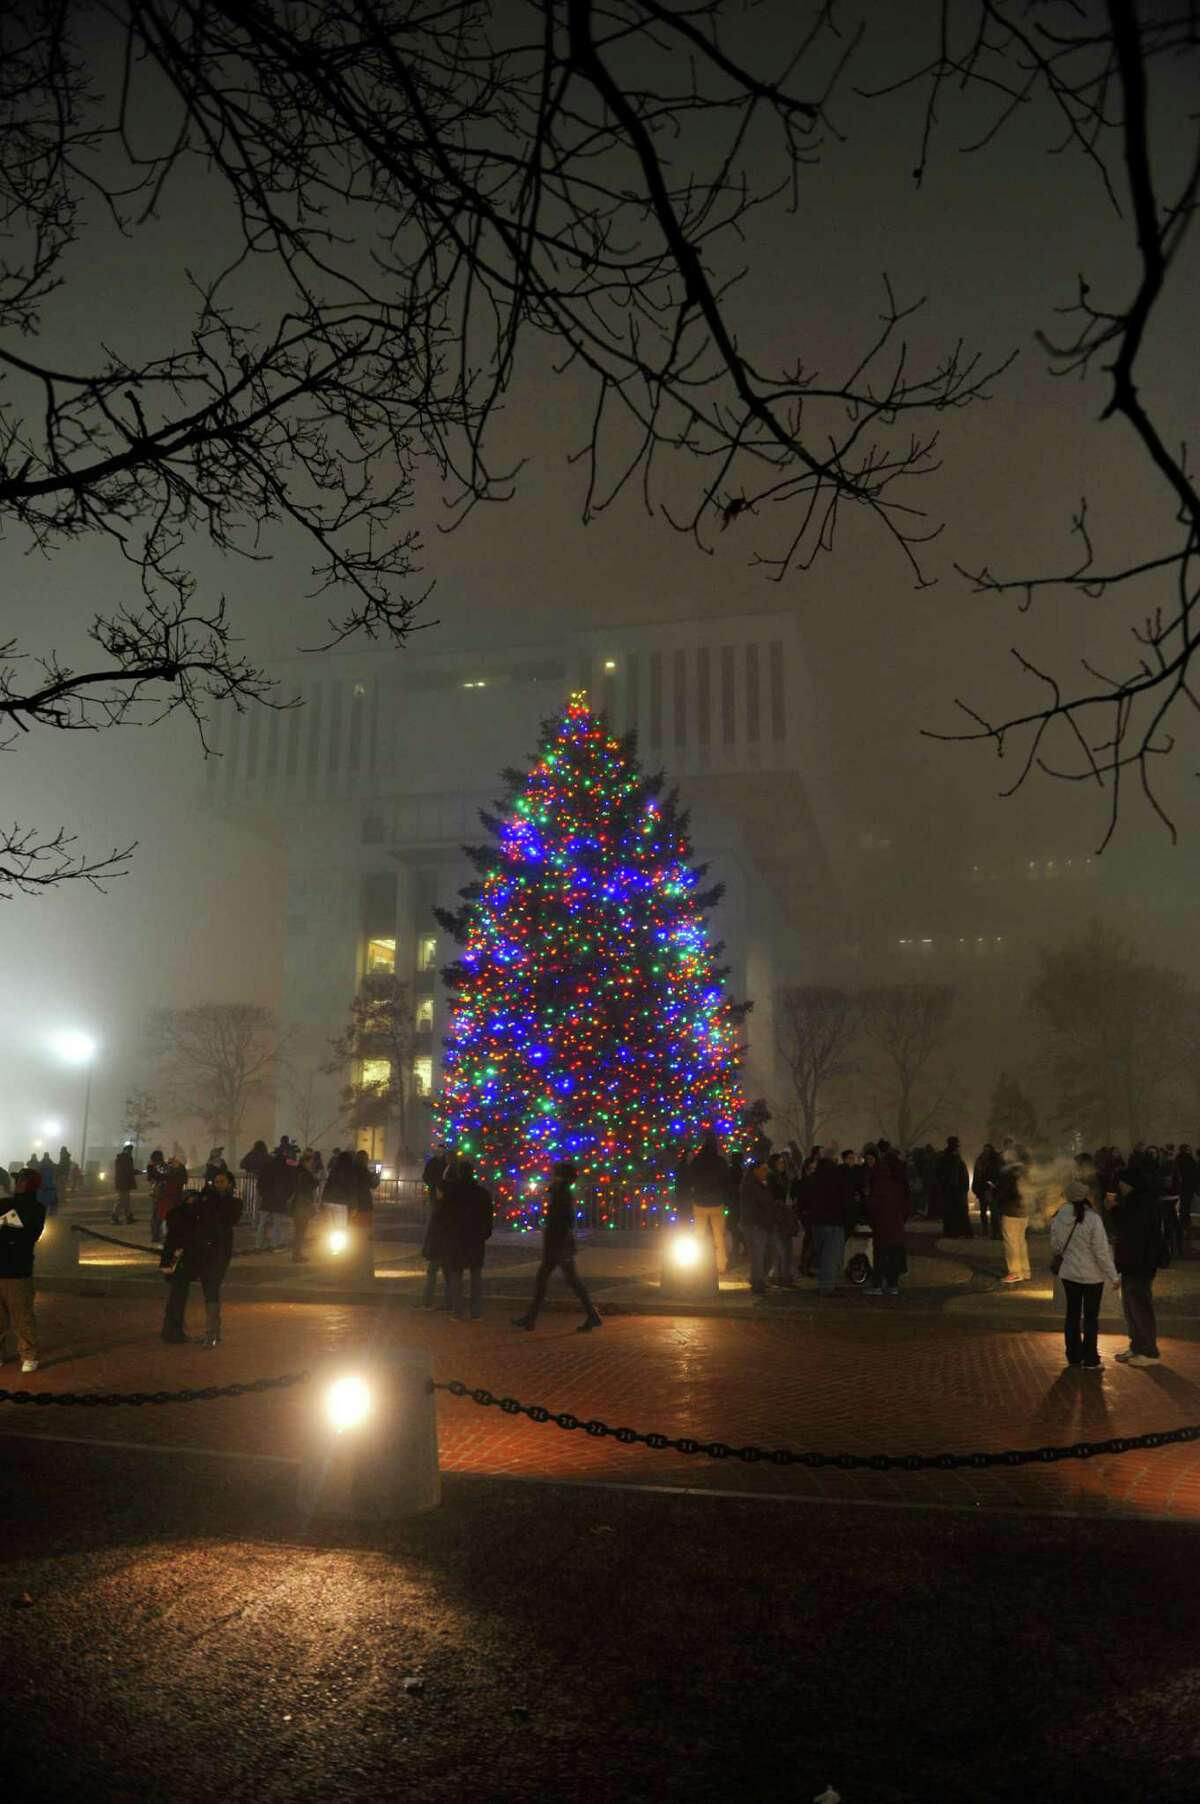 Children and adults look at and take pictures of the Christmas tree on the Empire State Plaza during the official tree lighting ceremony on Sunday, Dec. 6, 2015, in Albany, N.Y. (Paul Buckowski / Times Union)